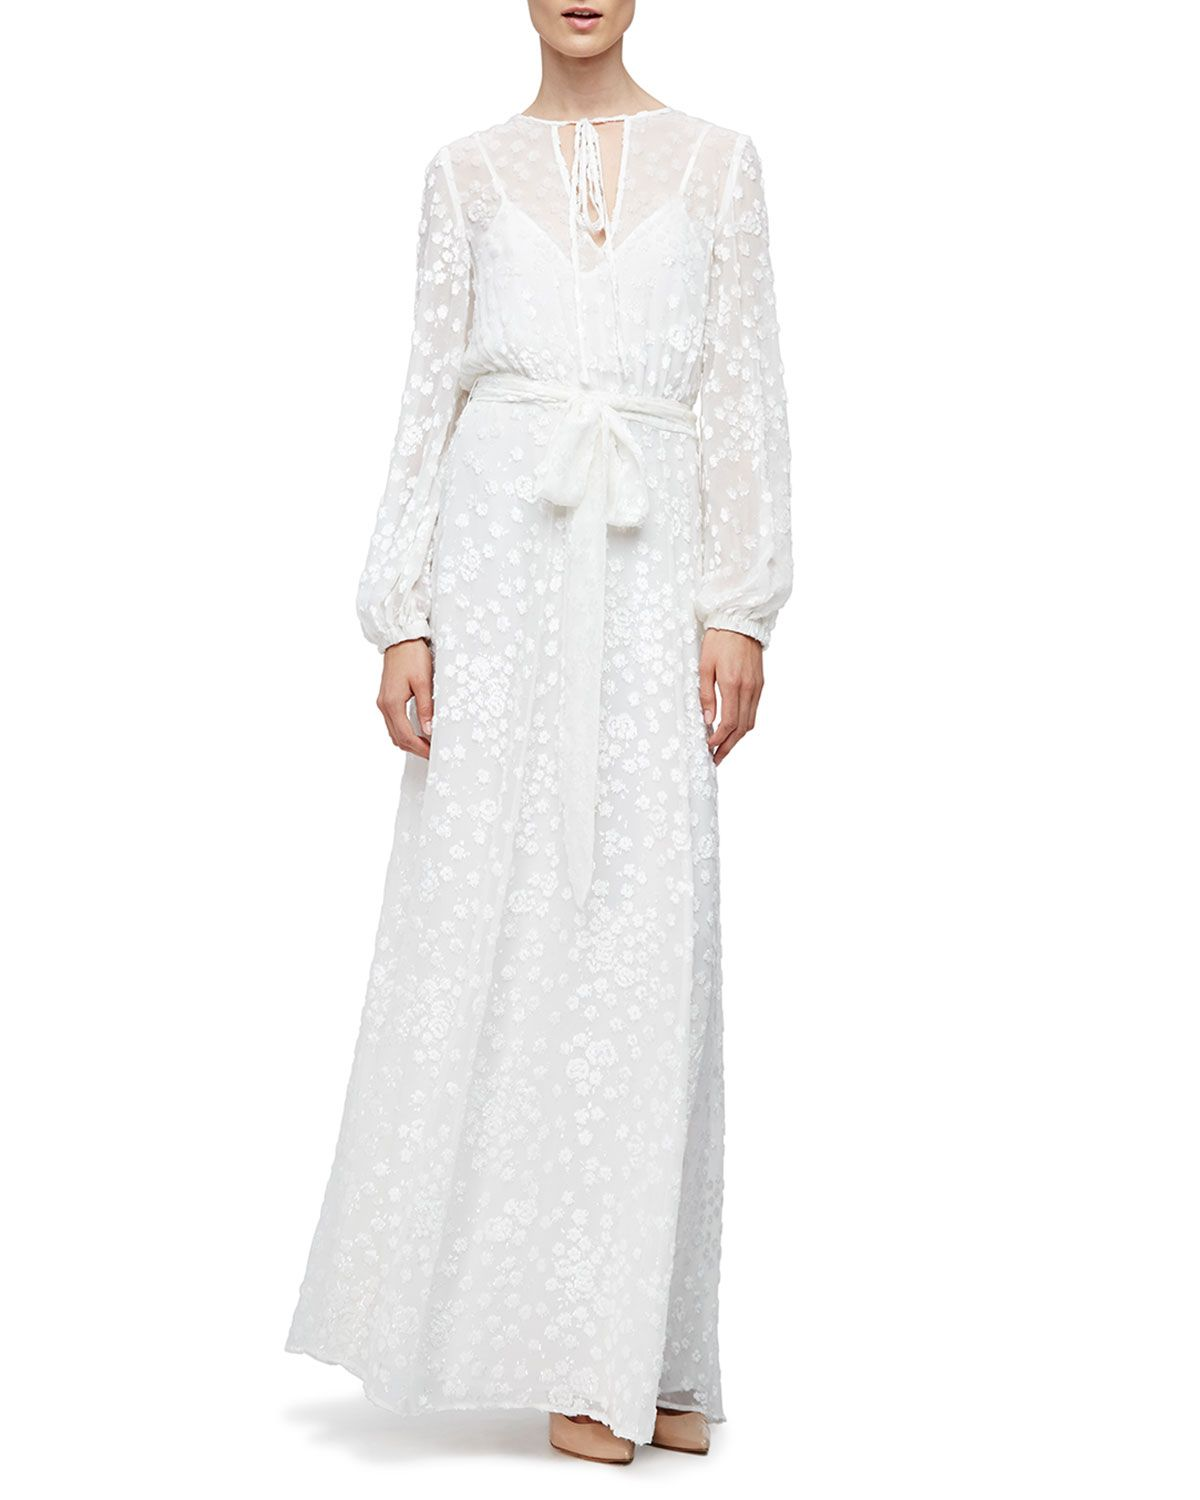 Longsleeve floralembroidered maxi peasant dress white white